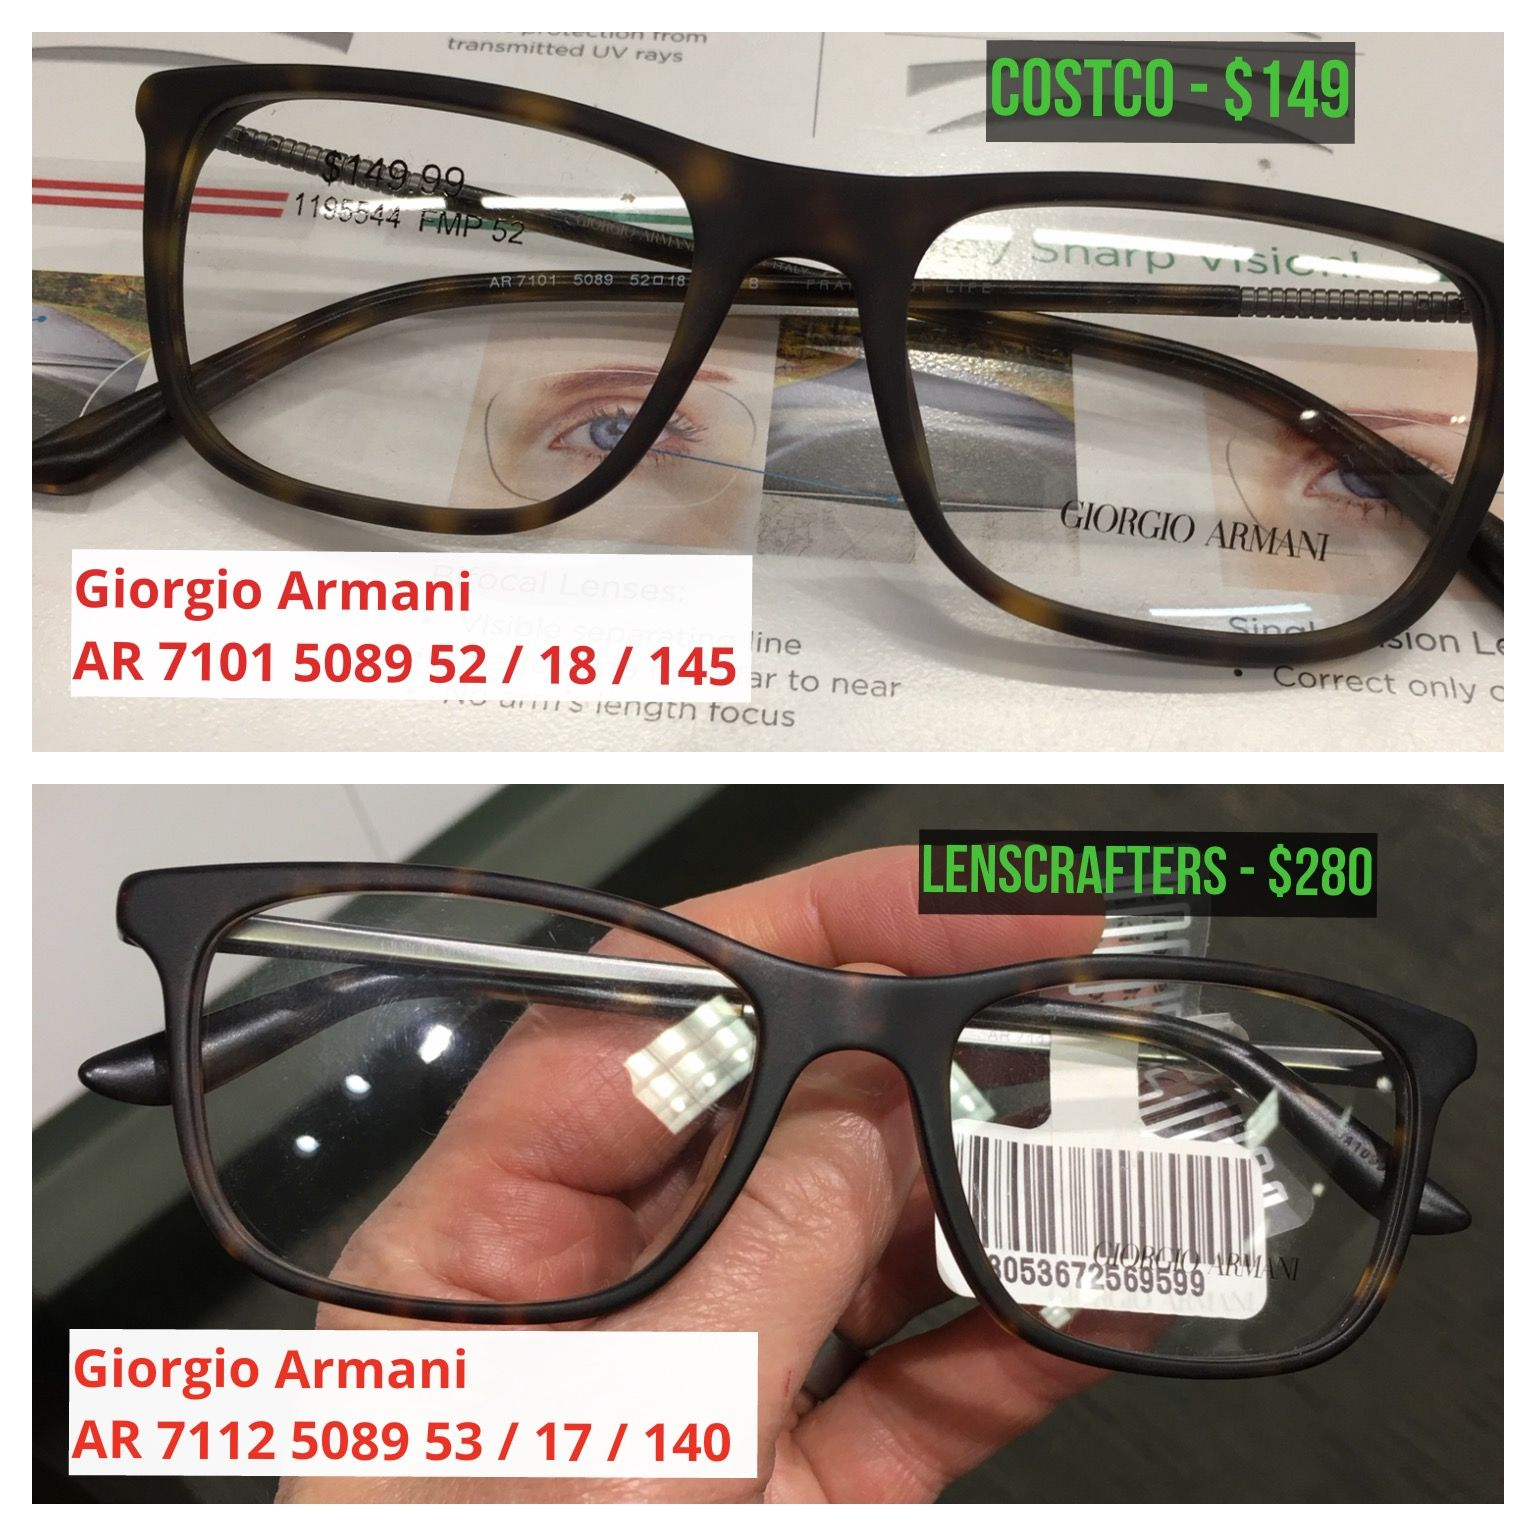 Pin By Anita Langham Lombard On Glasses Optometry Lenscrafters Glasses Giorgio Armani